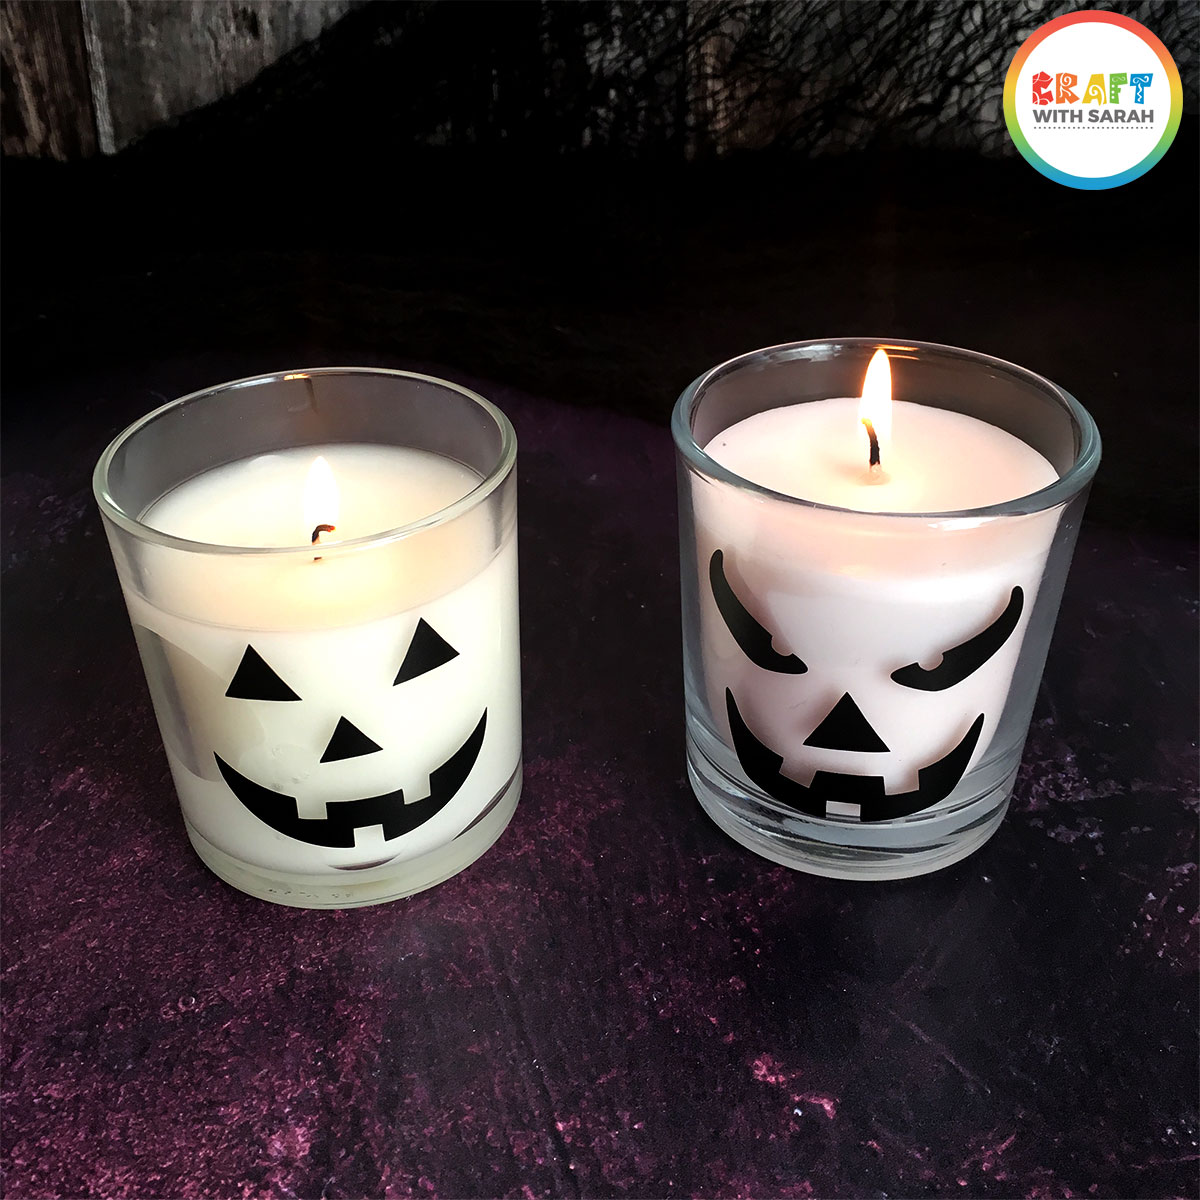 Pumpkin faces added to candles